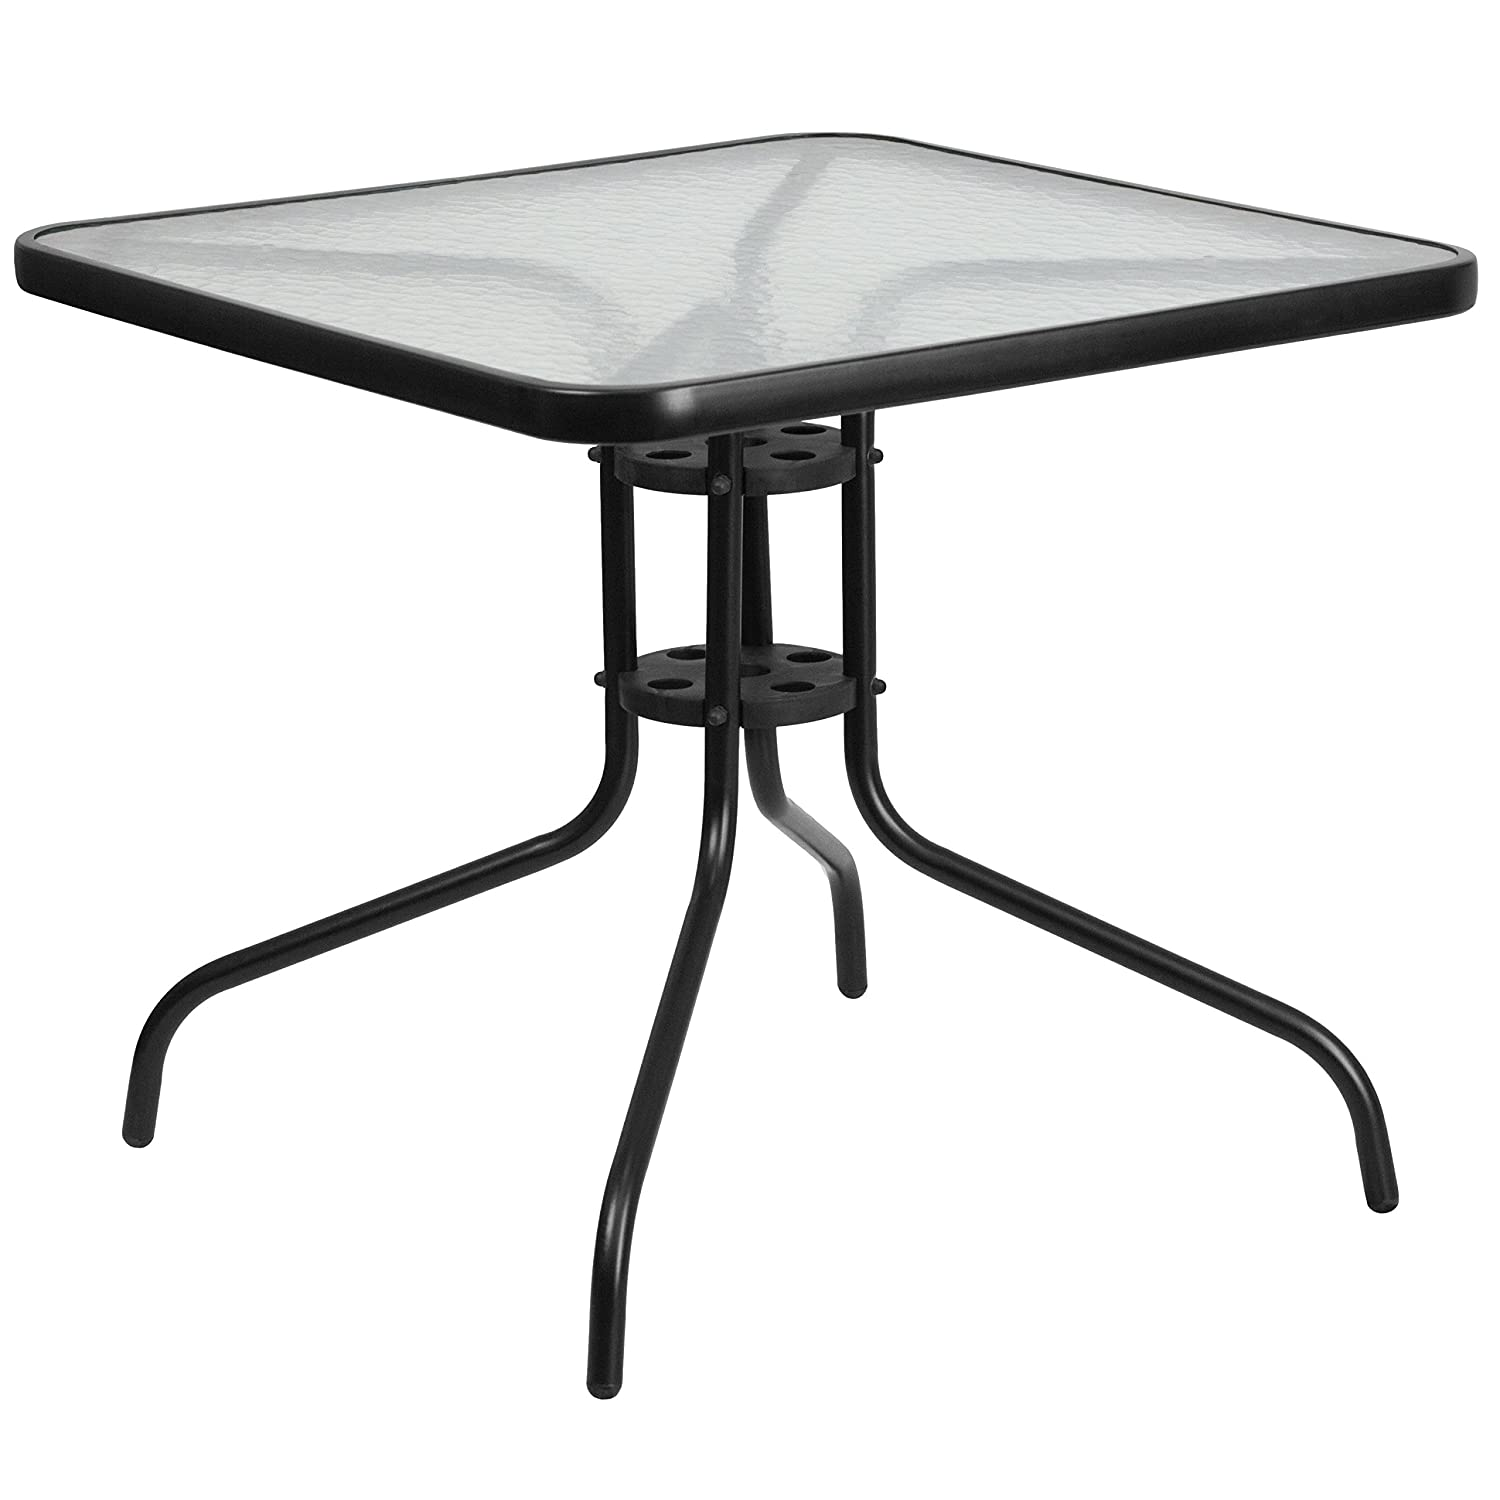 outdoor table, patio table, small patio table, wayfair patio table, wayfair outdoor table, outside table, wayfair patio furniture, wayfair tables, small garden table, wayfair outdoor furniture, outdoor center table, cute outdoor tables, patio center table, small low garden table, wayfair outdoor, small garden tables cheap, little garden table, home depot patio table, home depot outdoor table, deck table, home depot outside tables, outdoor patio tables at home depot, large patio table, home depot garden table, home depot picnic table, home depot tables outdoor, porch table, small outside table, home depot tables, long outdoor table, yard table, lawn table, round patio, outdoor garden table, poolside table, large outdoor table, long patio table, table patio, patio tables only, small outdoor table with umbrella, folding patio table with umbrella hole, large round patio table, plastic umbrella table, garden patio table, plastic patio table with umbrella, black glass garden table, small metal table, wood picnic table home depot, plastic patio table with removable legs, cheap garden tables only, glass garden table, home depot table umbrella, exterior table, outdoor plastic table with umbrella hole, outdoor table size, home depot outdoor coffee table, cheap tables, garden table, big patio table, round plastic table with umbrella hole, outdoor folding table, amazon outdoor table, small outdoor folding table, outside folding tables, folding patio table, amazon patio furniture, backyard table, folding outdoor dining table, outdoor folding table and chairs, folding patio table and chairs, outdoor desk, rectangle outdoor table, outdoor patio table, white outdoor folding table, outdoor tables for sale, table de patio, patio furniture table, metal folding table outdoor, plastic outside table, portable patio table and chairs, lawn table and chairs, amazon outdoor furniture, small collapsible outdoor table, outdoor table on casters, narrow outdoor table, patio tables on sale, round folding patio table, narrow patio table, folding patio dining table, plastic rectangular outdoor table, small outdoor tables for sale, amazon patio table, fold up outdoor table, portable folding outdoor table, outside tables for sale, patio table on wheels, small folding garden table, outdoor furniture folding table and chairs, folding outdoor table with umbrella hole, fold away outdoor table, small folding patio table and chairs, buy outdoor table, lanai table, folding garden table and chairs, foldable outdoor dining table, patio desk, narrow deck table, outdoor table on wheels, small round folding garden table, outside patio table, small lawn table, outdoor card table, small patio tables for sale, folding outdoor dining table and chairs, amazon com patio furniture, fold up outdoor table and chairs, bbq tables outdoor furniture, grunnet table, outdoor party tables, amazon patio, outdoor table frame, foldable garden table, fold up outdoor dining table, amazon garden furniture, folding garden table, fold up outdoor furniture, walmart outdoor table, small outdoor table, outdoor glass table, round patio table, walmart outside tables, glass top patio table, glass patio table, walmart patio tables only, small patio tables at walmart, replacement glass for patio table from walmart, round glass patio table, small outdoor table walmart, glass top outdoor table, 30 patio table, outside tables walmart, square patio table, square outdoor table, walmart patio table with umbrella hole, walmart glass patio table, white outdoor table, small round patio table, small round outdoor table, round glass picnic table, tempered glass patio table, patio table glass, round outdoor patio table, round glass outdoor table, round glass top patio table, round outside table, hexagon patio table, 24 inch round table, white glass top patio table, 30 inch patio table, black patio table glass top, mesh patio table, walmart outdoor furniture, walmart tables, black outdoor table, glass table patio set, rectangular glass patio table, small glass top outdoor table, white round patio table, outdoor glass patio table, 48 inch round patio table, black glass patio table, 36 inch patio table, round glass patio table with umbrella hole, oval patio table, outside glass table, steel patio table, outdoor table steel, 30 round patio table, 42 inch high patio table, small glass patio table, 36 patio table, white round outdoor table, 36 inch round patio table, patio table round glass top, glass top patio set, white round outdoor patio table, rectangular patio table with glass top, 42 glass patio table, round glass garden table, round glass top outdoor table, round glass table patio set, folding glass garden table, octagon patio table, small square outdoor table, 42 patio table, square metal outdoor table, small rectangular patio table, target patio table, outdoor glass table and chairs, small black garden table, glass table outdoor furniture, glass top outdoor patio table, 40 inch round patio table, round wood patio table, 40 round patio table, white patio table with umbrella hole, glass top patio table set, glass picnic table, backyard glass table, walmart patio table replacement glass, black glass patio furniture, black garden table, lowes patio table, lowes outdoor table, tile patio table, lowes patio furniture, patio dining table, lowes outdoor dining table, round outdoor table, lowes outdoor side table, tile top patio table, metal outdoor table, lowes patio dining table, lowes patio side table, plastic outdoor table, metal patio table, rectangle patio table, outdoor high top table, lowes outdoor furniture side tables, high top patio table, patio table with umbrella hole, round outdoor dining table, patio end tables, patio side table, wrought iron patio tables lowes, lowes cafe table, lowes outdoor coffee table, rectangular patio dining table, round patio dining table, small patio table with umbrella hole, small plastic table, tile outdoor table, patio table with removable tiles, outdoor dining table, lowes wrought iron table, metal outdoor side table, tall patio table, resin patio table, metal outdoor dining table, glass top patio dining table, lowes patio sets, round patio table and chairs, lowes resin table, small patio table with umbrella, round metal patio table, round patio table only, square metal garden table, 48 round patio table, round table patio furniture, extendable patio table, small umbrella table, white patio table, small patio side table, 60 inch round patio table, tile top outdoor table, wrought iron patio table rectangular, round tile top patio table, lowes tables, rectangular patio table with umbrella hole, wrought iron table, tall outdoor table, aluminum patio table, lowes patio, round plastic outdoor tables, black patio table, outdoor pub table, glass outdoor dining table, plastic outdoor side table, tile top patio dining table, outdoor rectangular dining table, cb2 outdoor furniture, cb2 outdoor, cb2 patio furniture, ceramic outdoor table, cb2 outdoor table, picnic dining table, outdoor side table, cb2 outdoor chairs, cb2 bistro table, target outdoor table, target outdoor dining table, patio table target store, outdoor barrel table, ikea outdoor table, ikea outdoor dining table, ikea folding table, ikea picnic table, ikea angso table white, foldable outdoor table, ikea square table, extendable outdoor table, wooden folding table ikea, ikea outdoor dining, ängsö ikea, ikea foldable table, ikea collapsible table, collapsible outdoor table, ikea angso table, ikea gateleg garden table, outdoor trestle table, ikea outdoor table and chairs, ikea aluminum table, outdoor wooden folding table, ikea outdoor table with umbrella hole, extendable outdoor dining table, small fold up table ikea, ikea teak dining table, ikea table white square, outdoor round folding table, 36 folding table ikea, ikea outdoor table bench, round folding table ikea, ikea outdoor table top, portable dining table, outdoor kitchen table, ikea outdoor table chairs, ikea outdoor bench, ikea table pliante, ikea folding portable table, folding balcony table ikea, ikea white outdoor table and chairs, ikea ammero table, expandable outdoor dining table, foldable round dining table, square outdoor dining table, ikea outdoor dining chairs, outside dining table, ikea fold up table, ikea plastic table, ikea outdoor table set, ikea angso